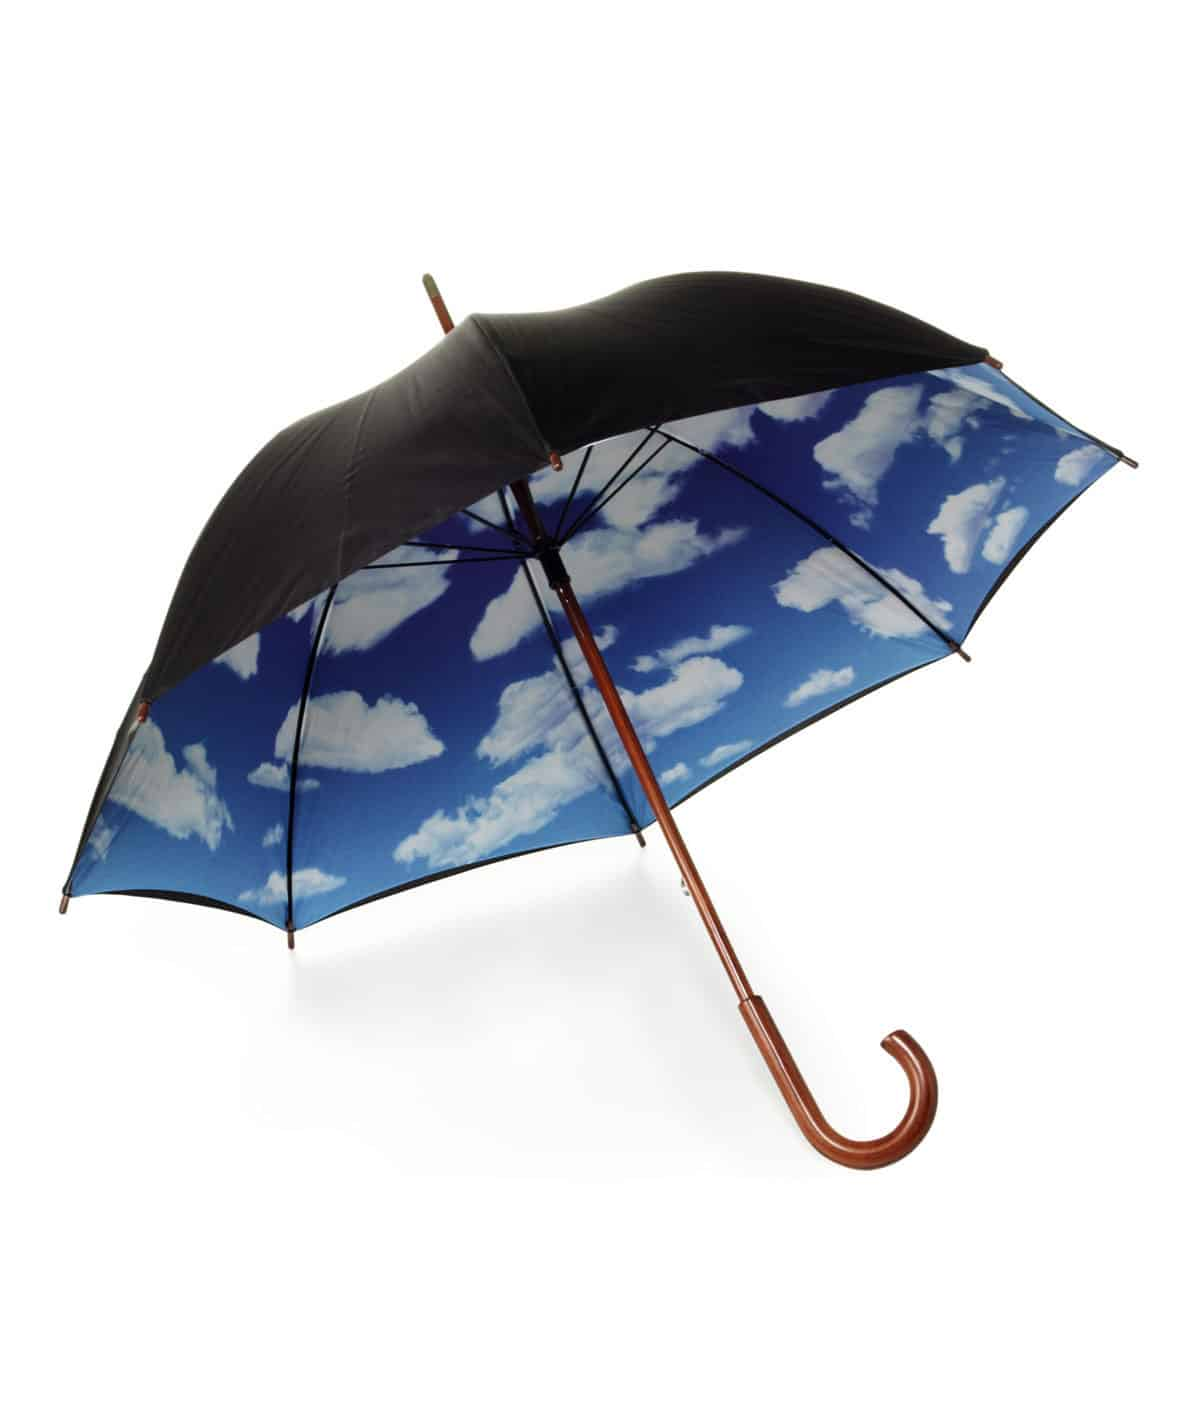 Umbrella-with-Clouds